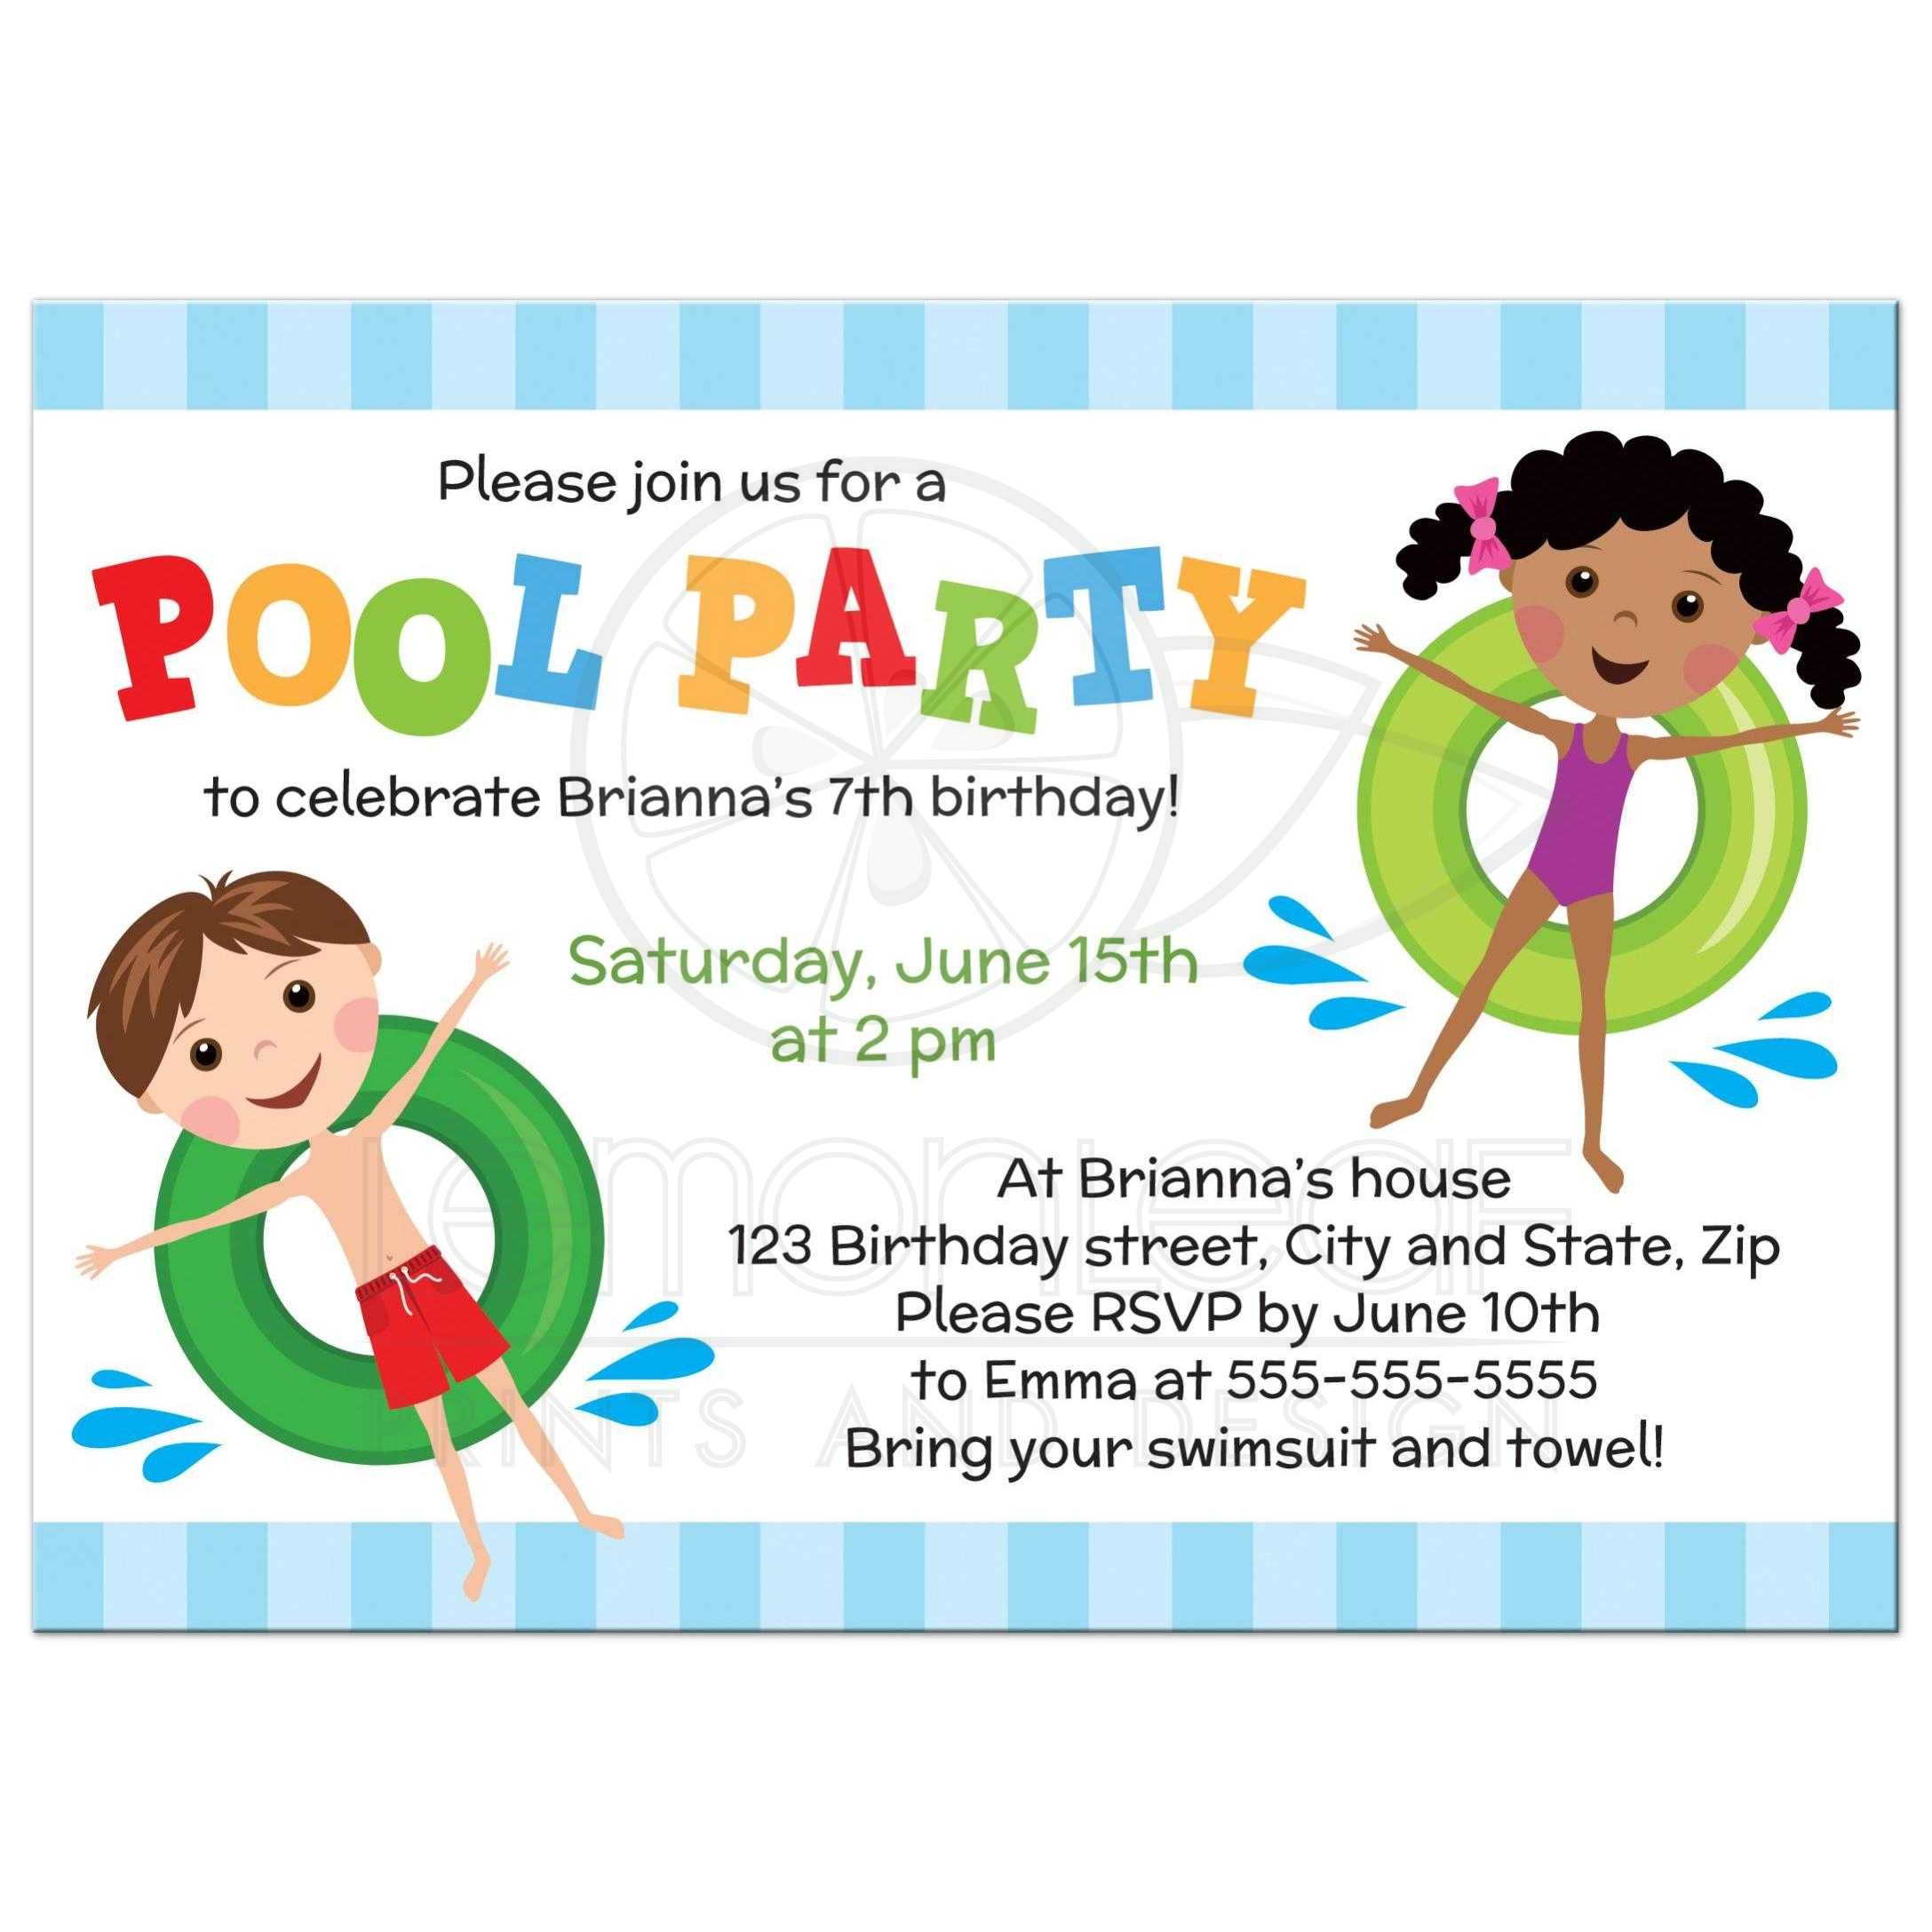 birthday party invitation size ; birthday-party-invitation-size-24919-rectangle-front-cute-brunette-boy-and-african-american-girl-on-inflatable-rings-pool-party-invitation-for-kids